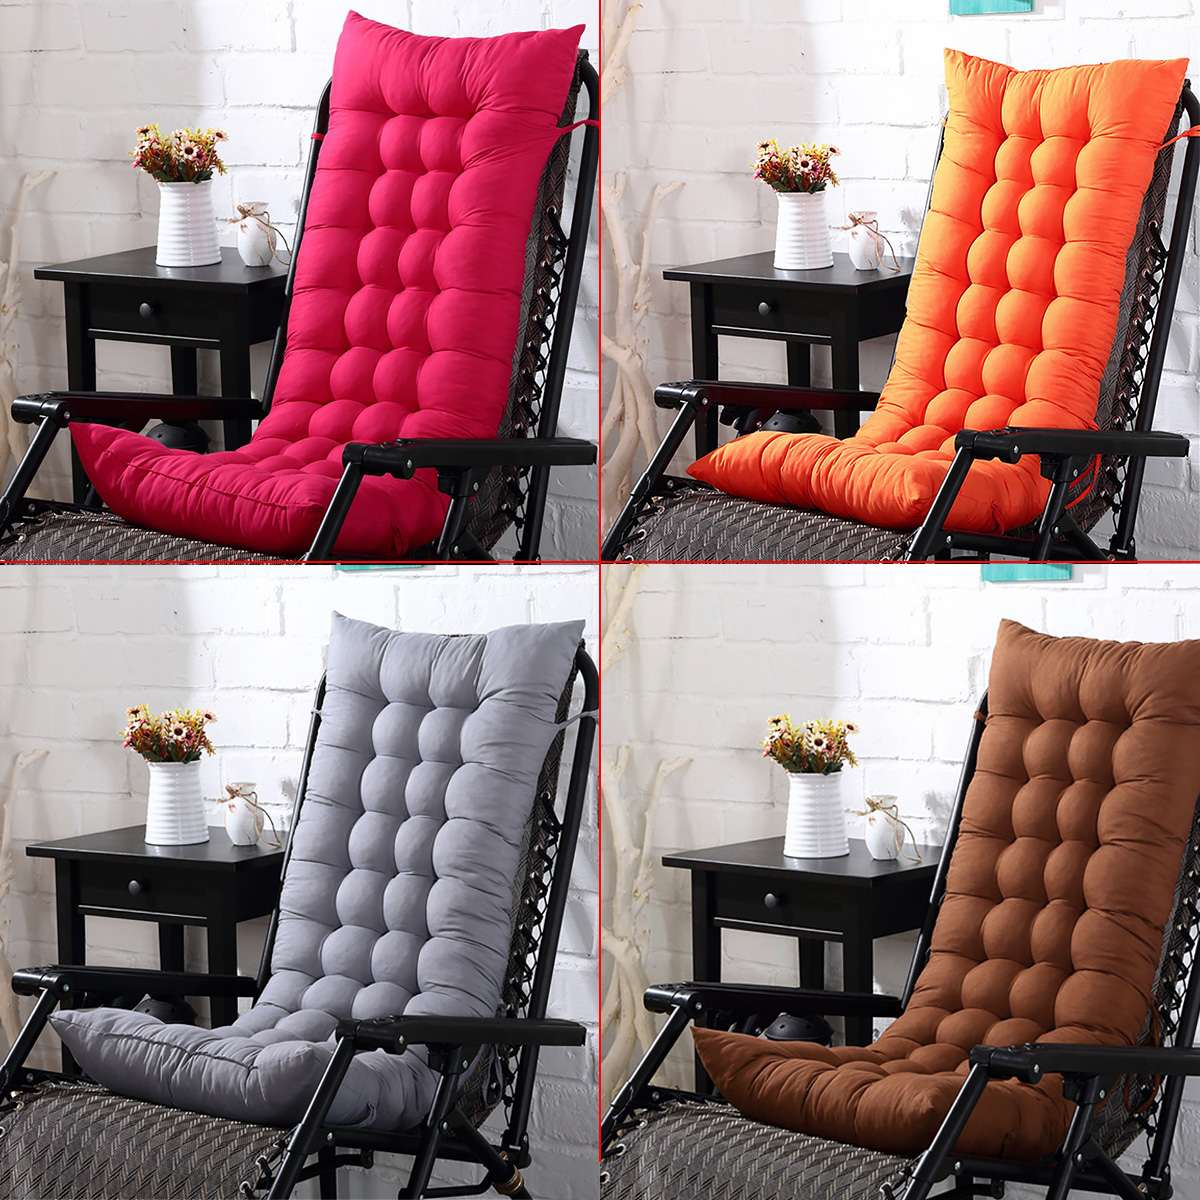 Lounge Chair Cushion Soft Relaxing Lazy Sofa Seat Cushion Floor Deck Chaise Pad Patio Pool Backyard Garden Home Comfortable